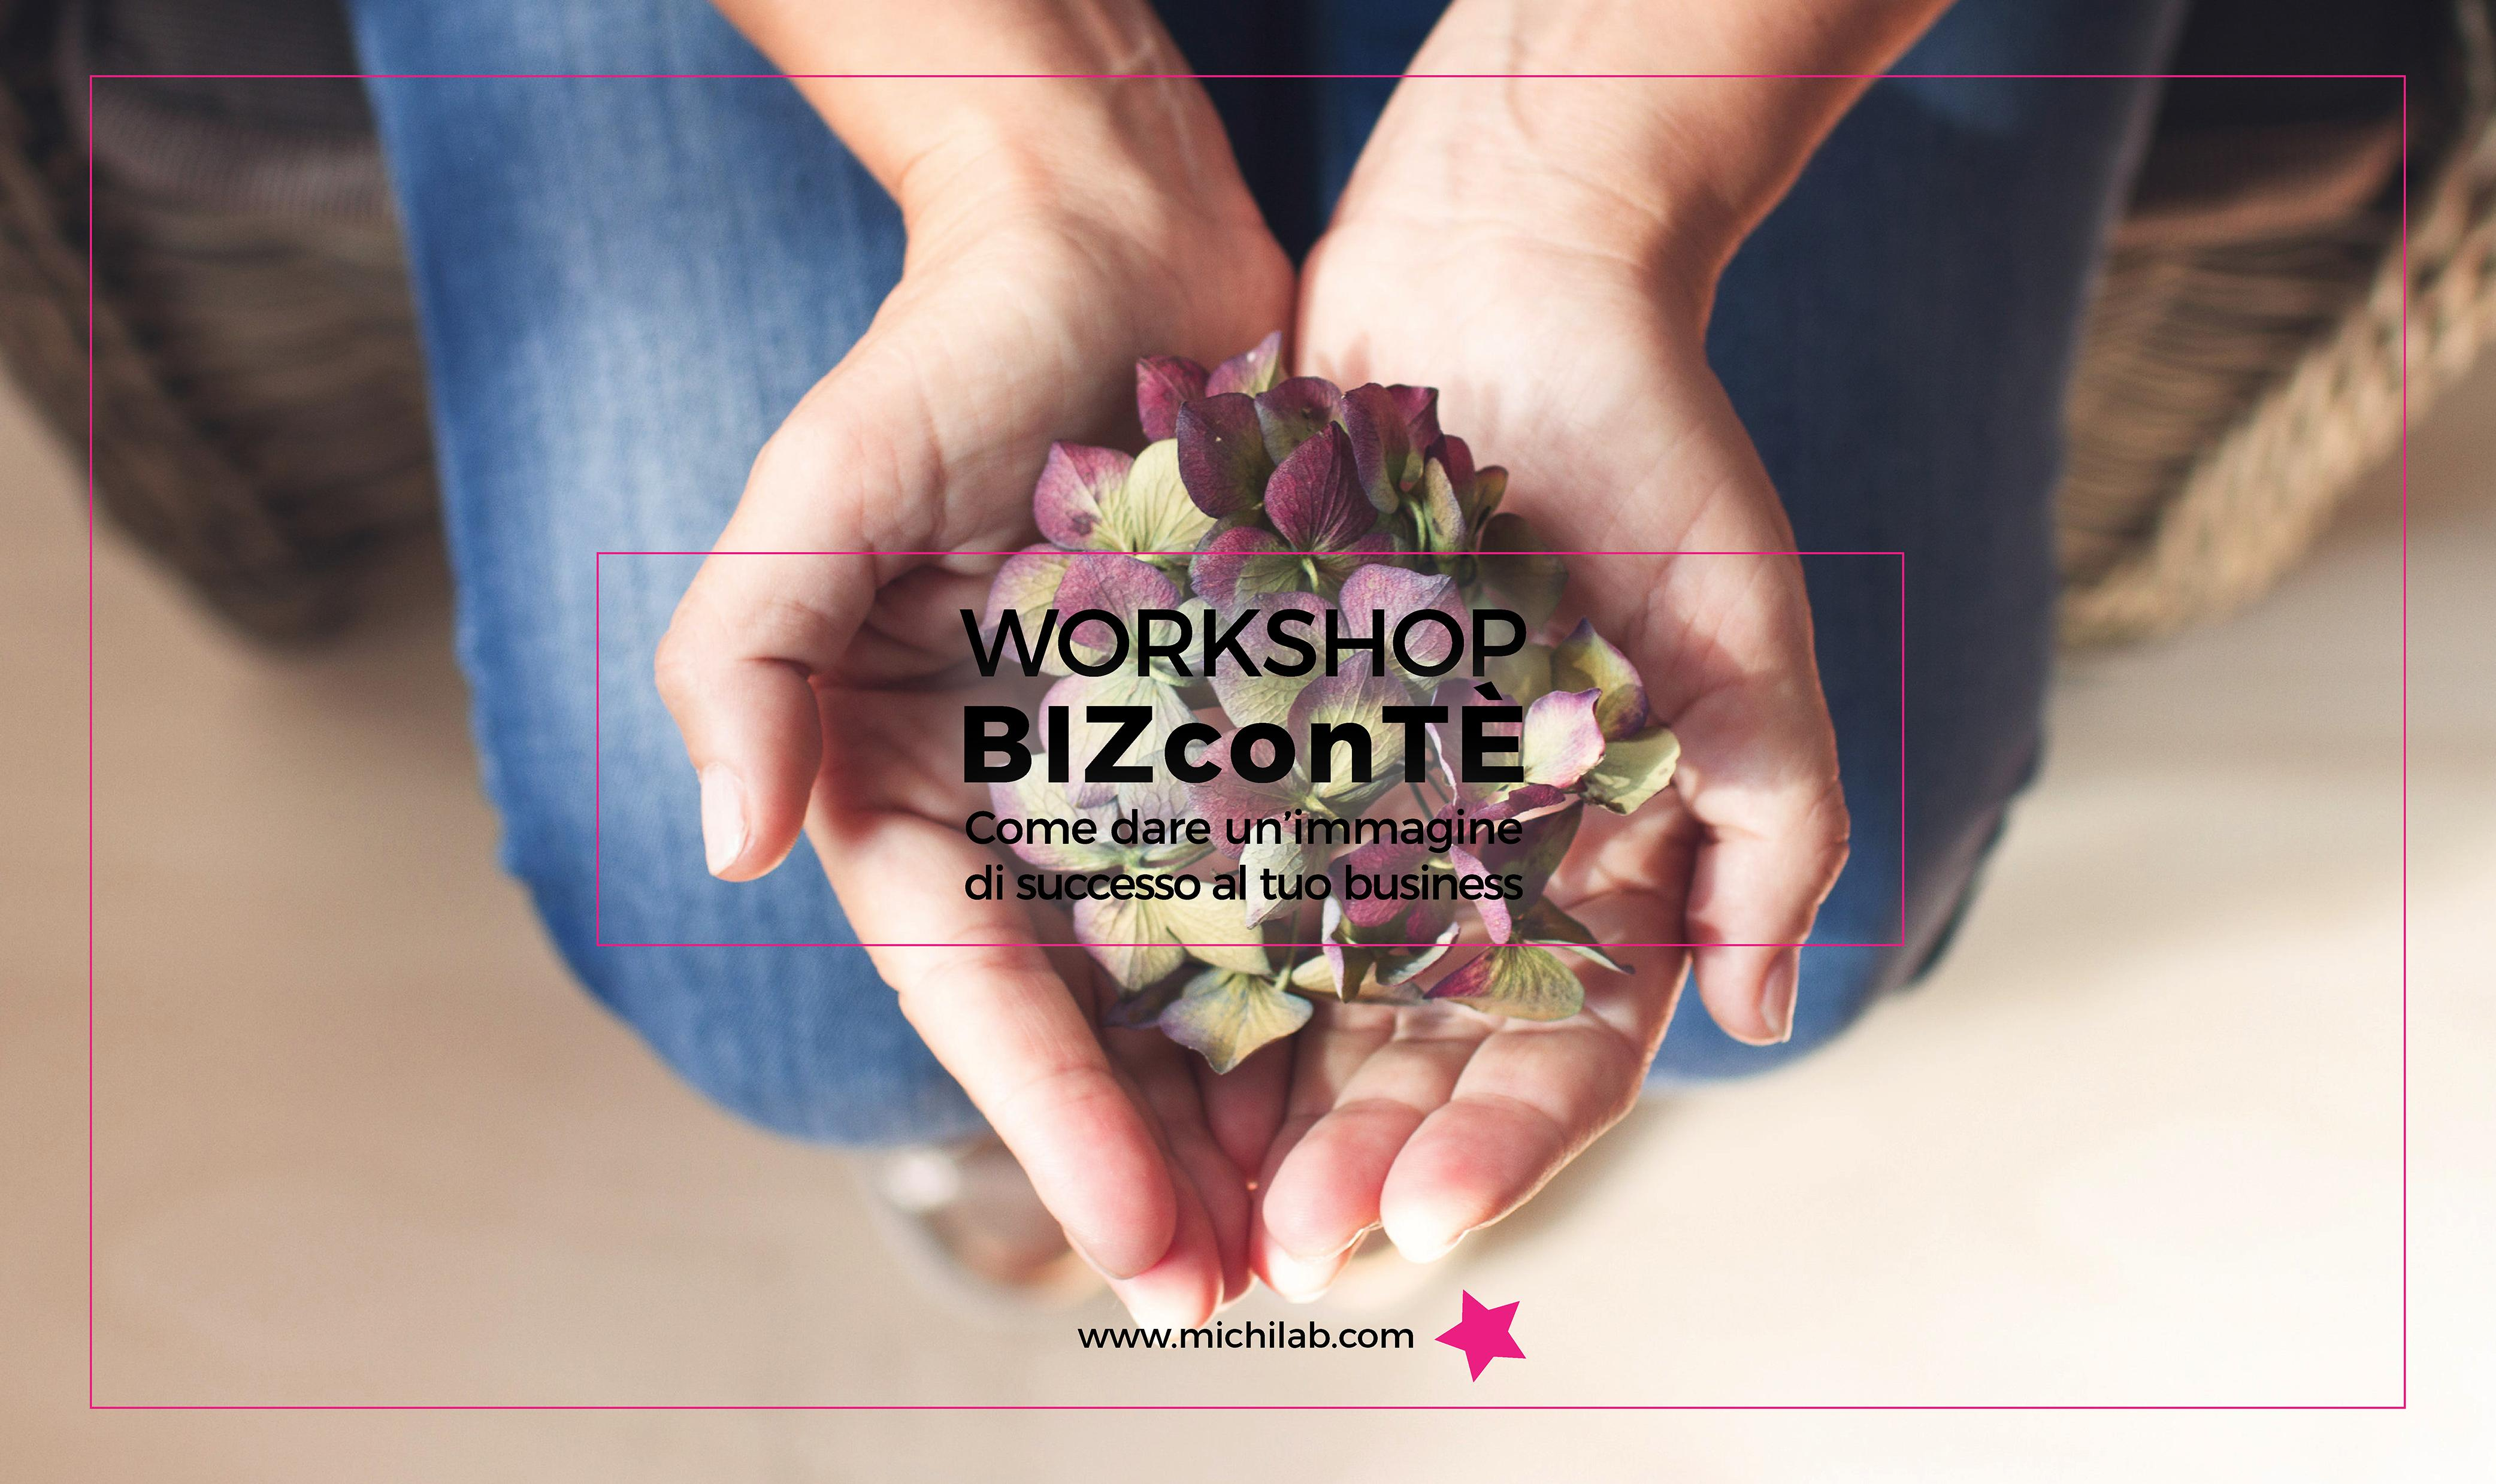 Workshop BIZ con tè in CommonWork